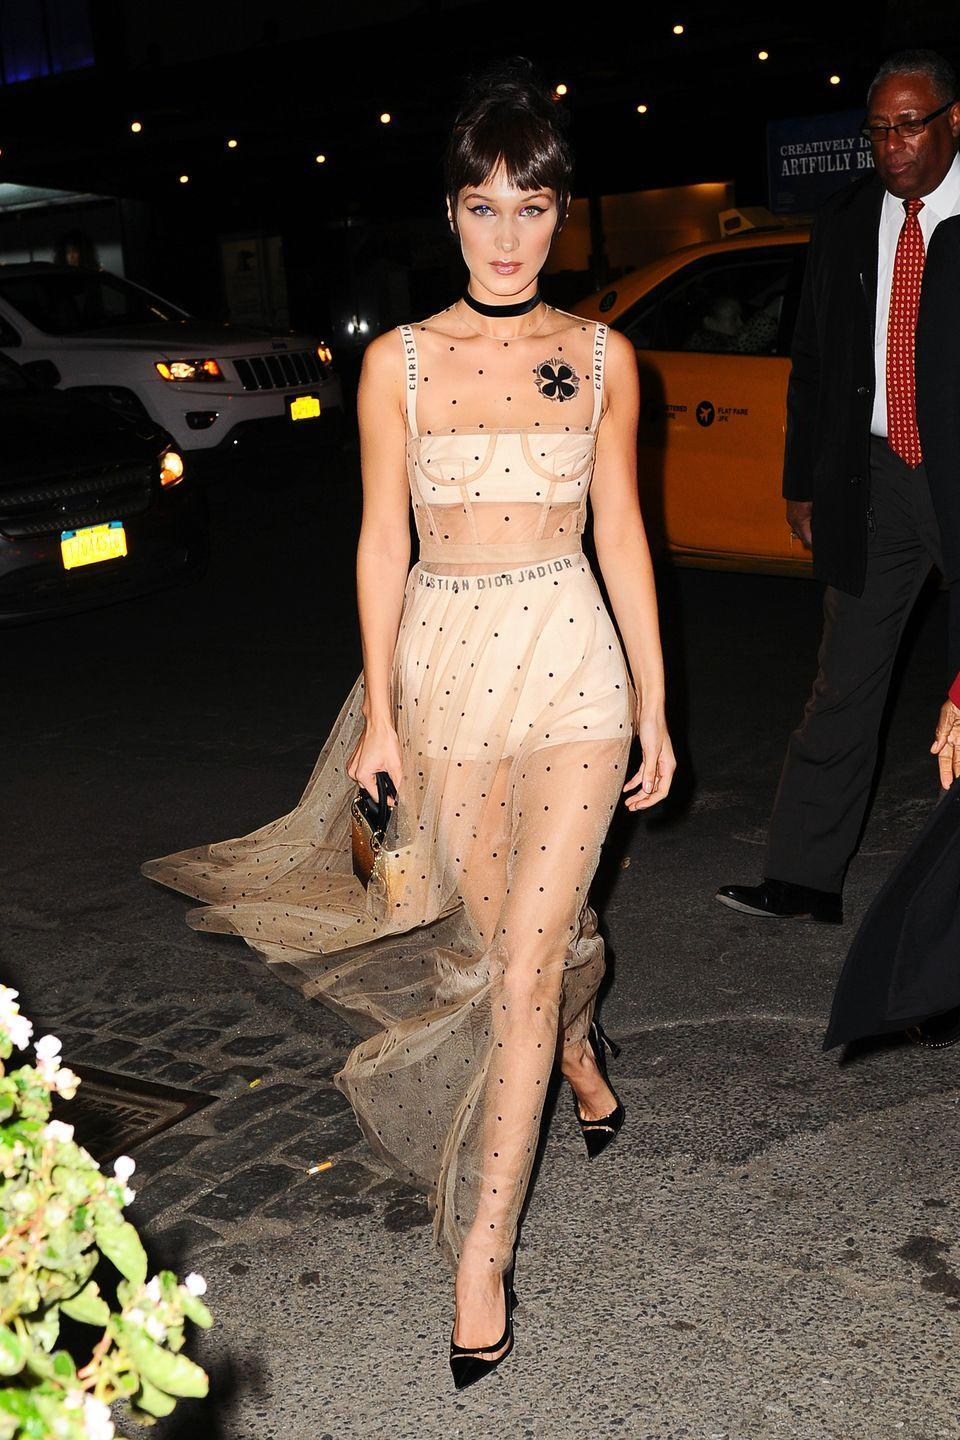 <p>In a sheer Dior Spring 2017 dress with a black choker, ombre handbag and pointed-toe pumps while out in NYC.</p>